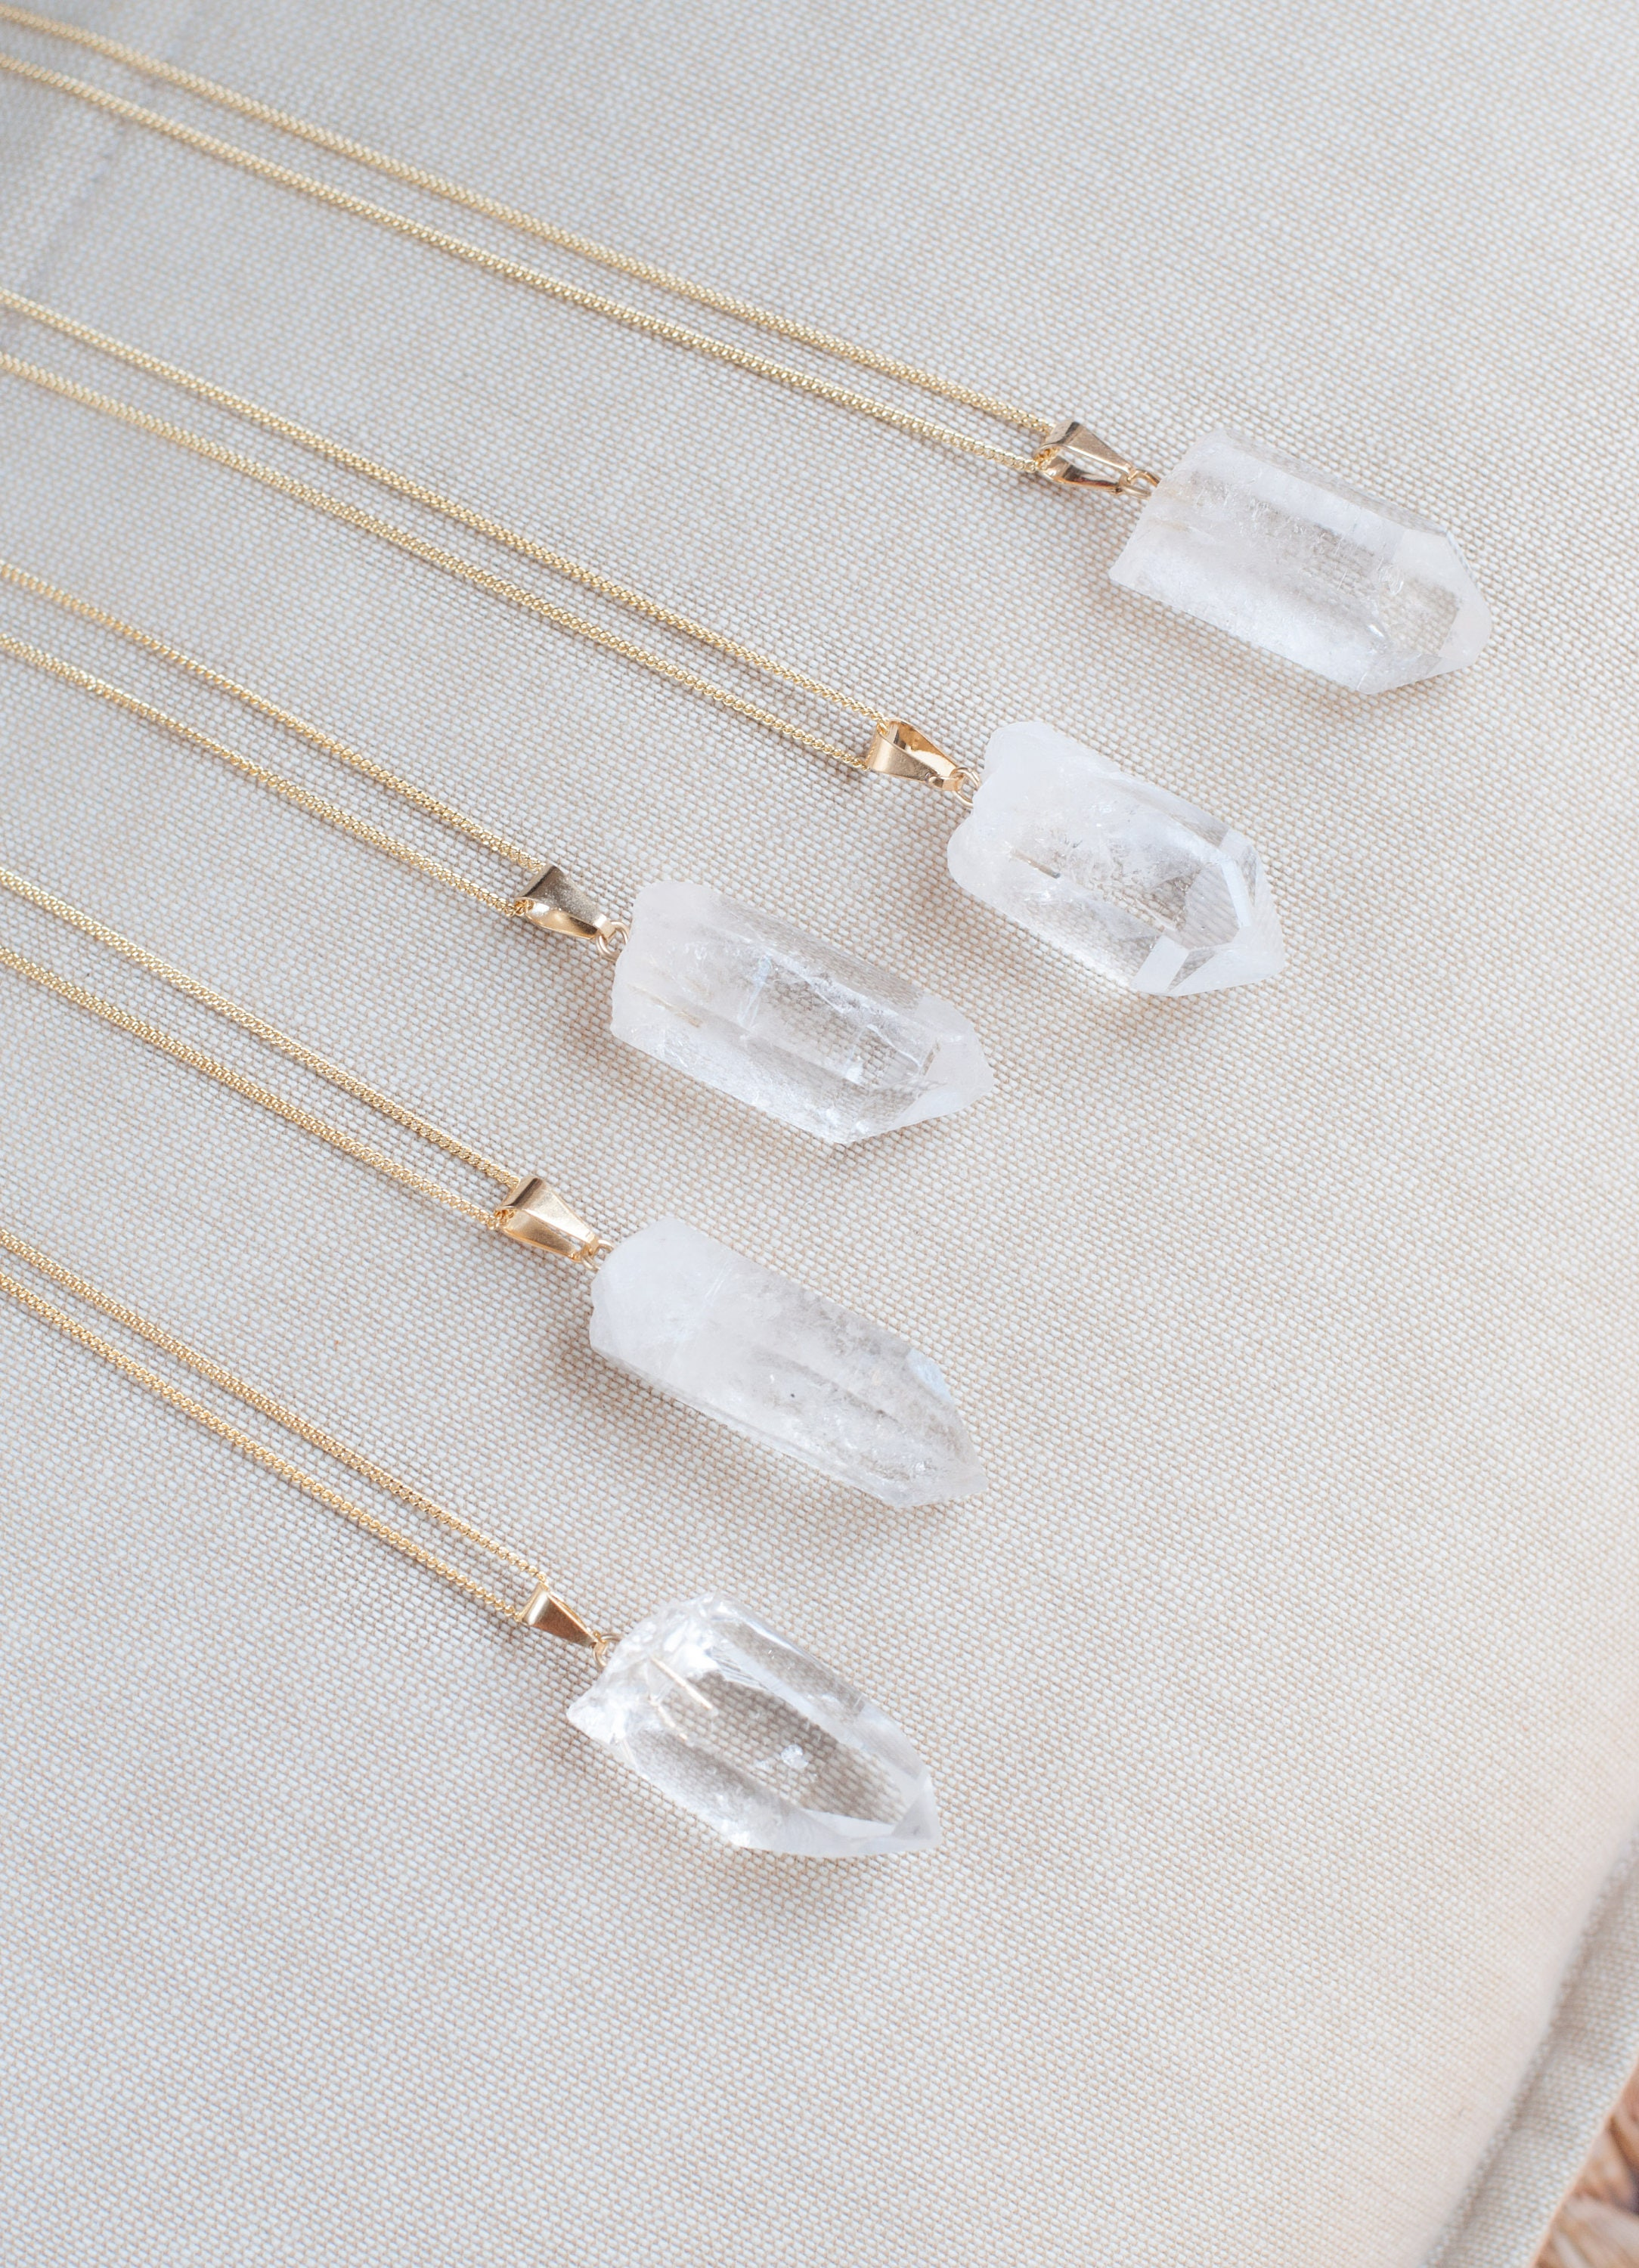 necklace turquoise layering ne clear quartz layered point original collections jewelry drop necklaces products crystal